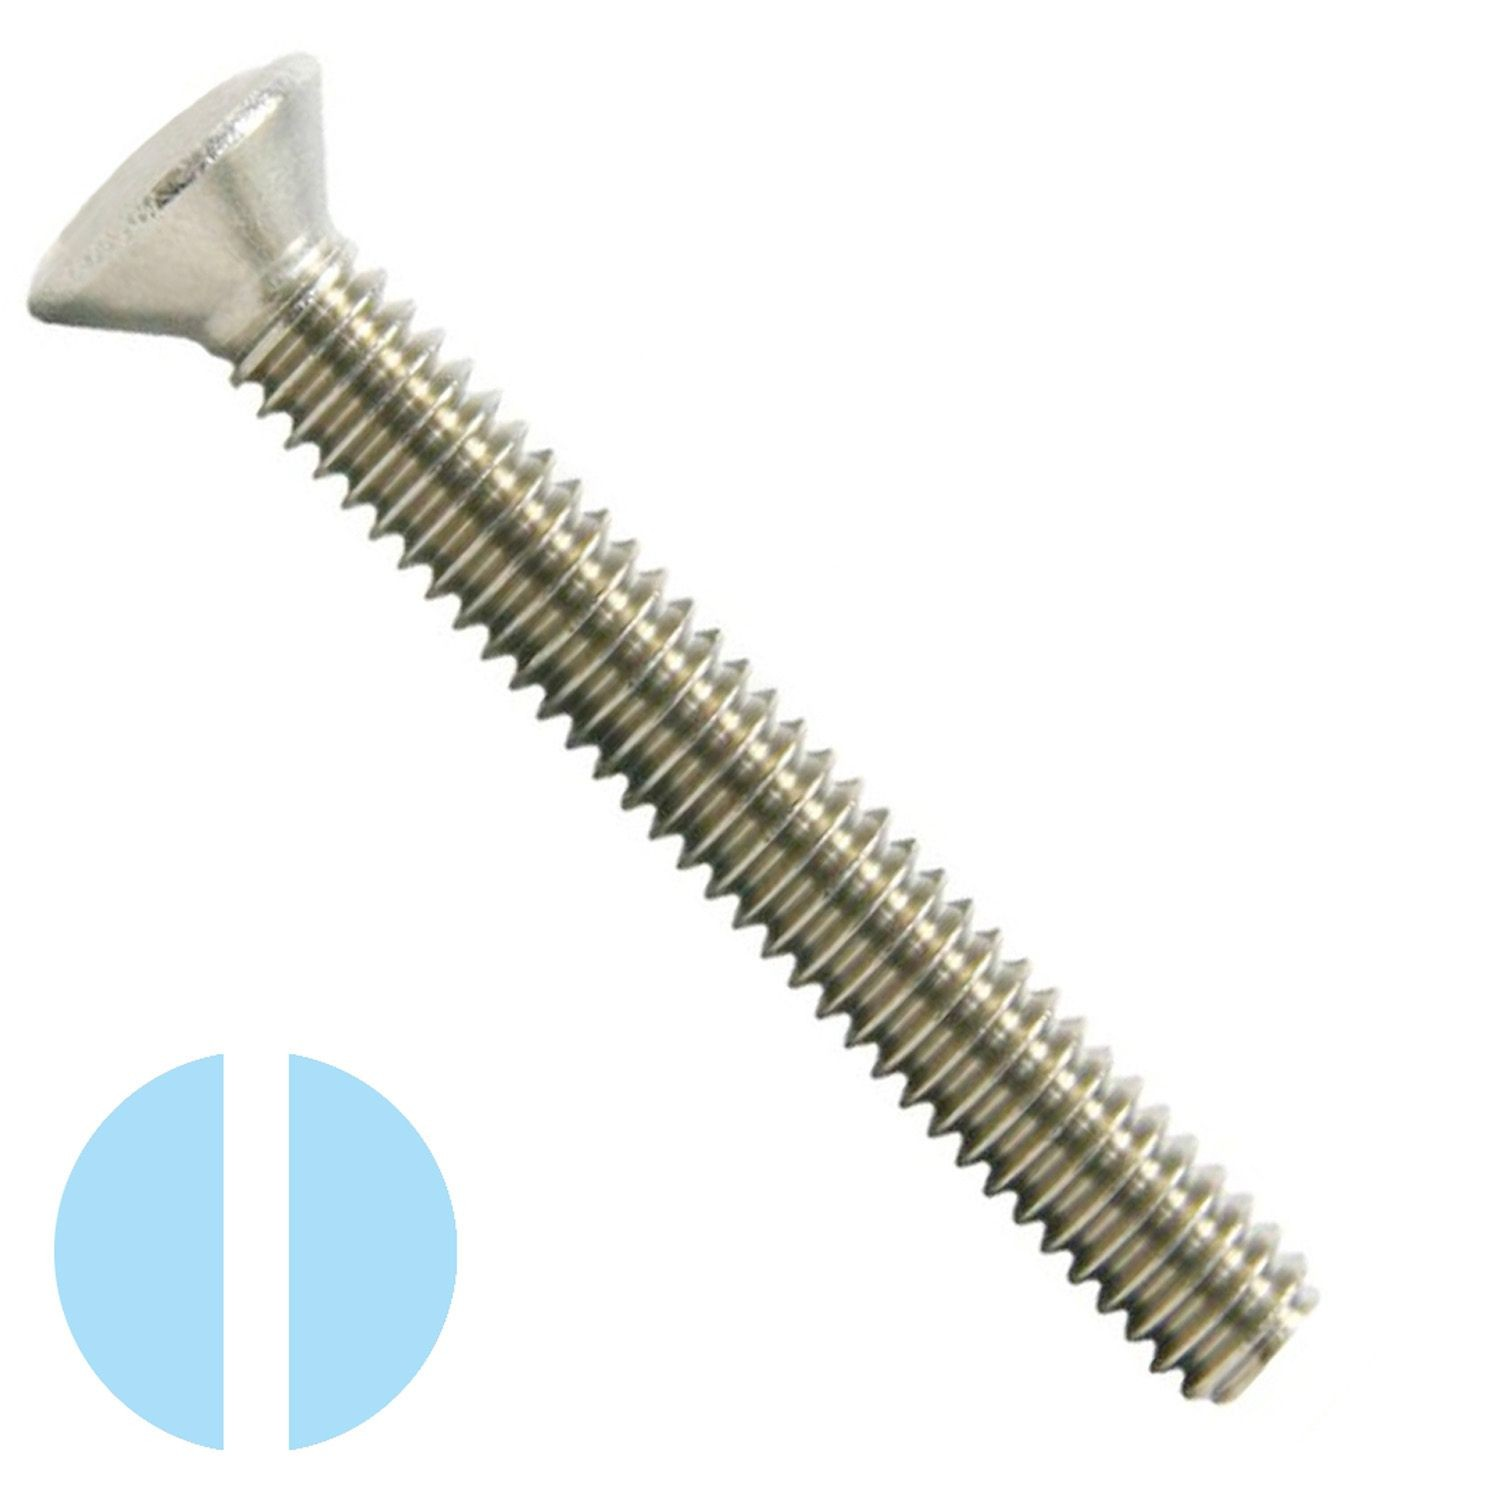 "#10-32 x 3"" Stainless Steel Slotted Oval Head Machine Screw 18-8"